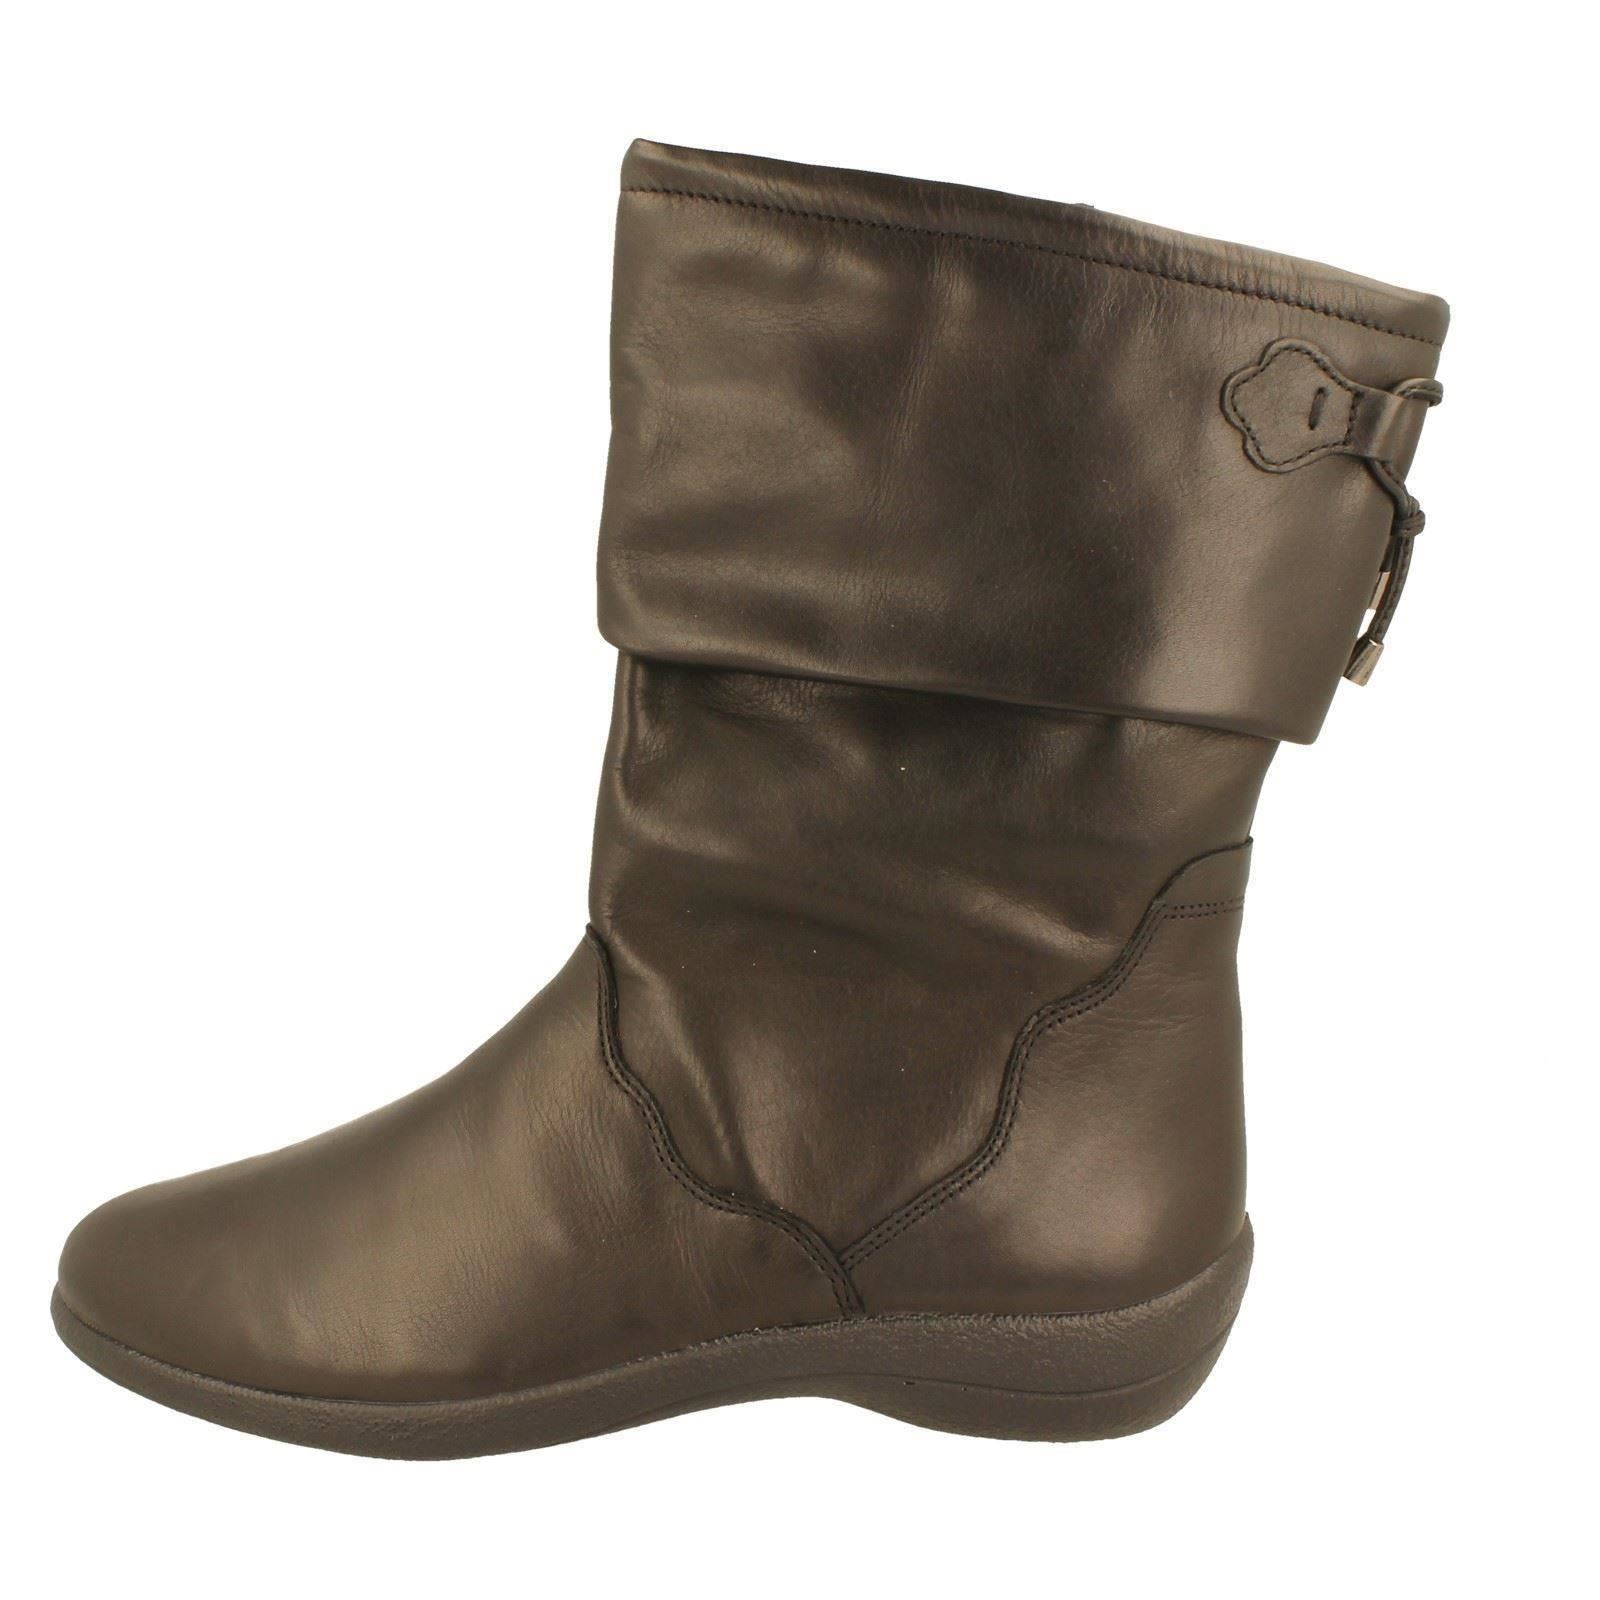 padders wide fitting calf boots the style regan w